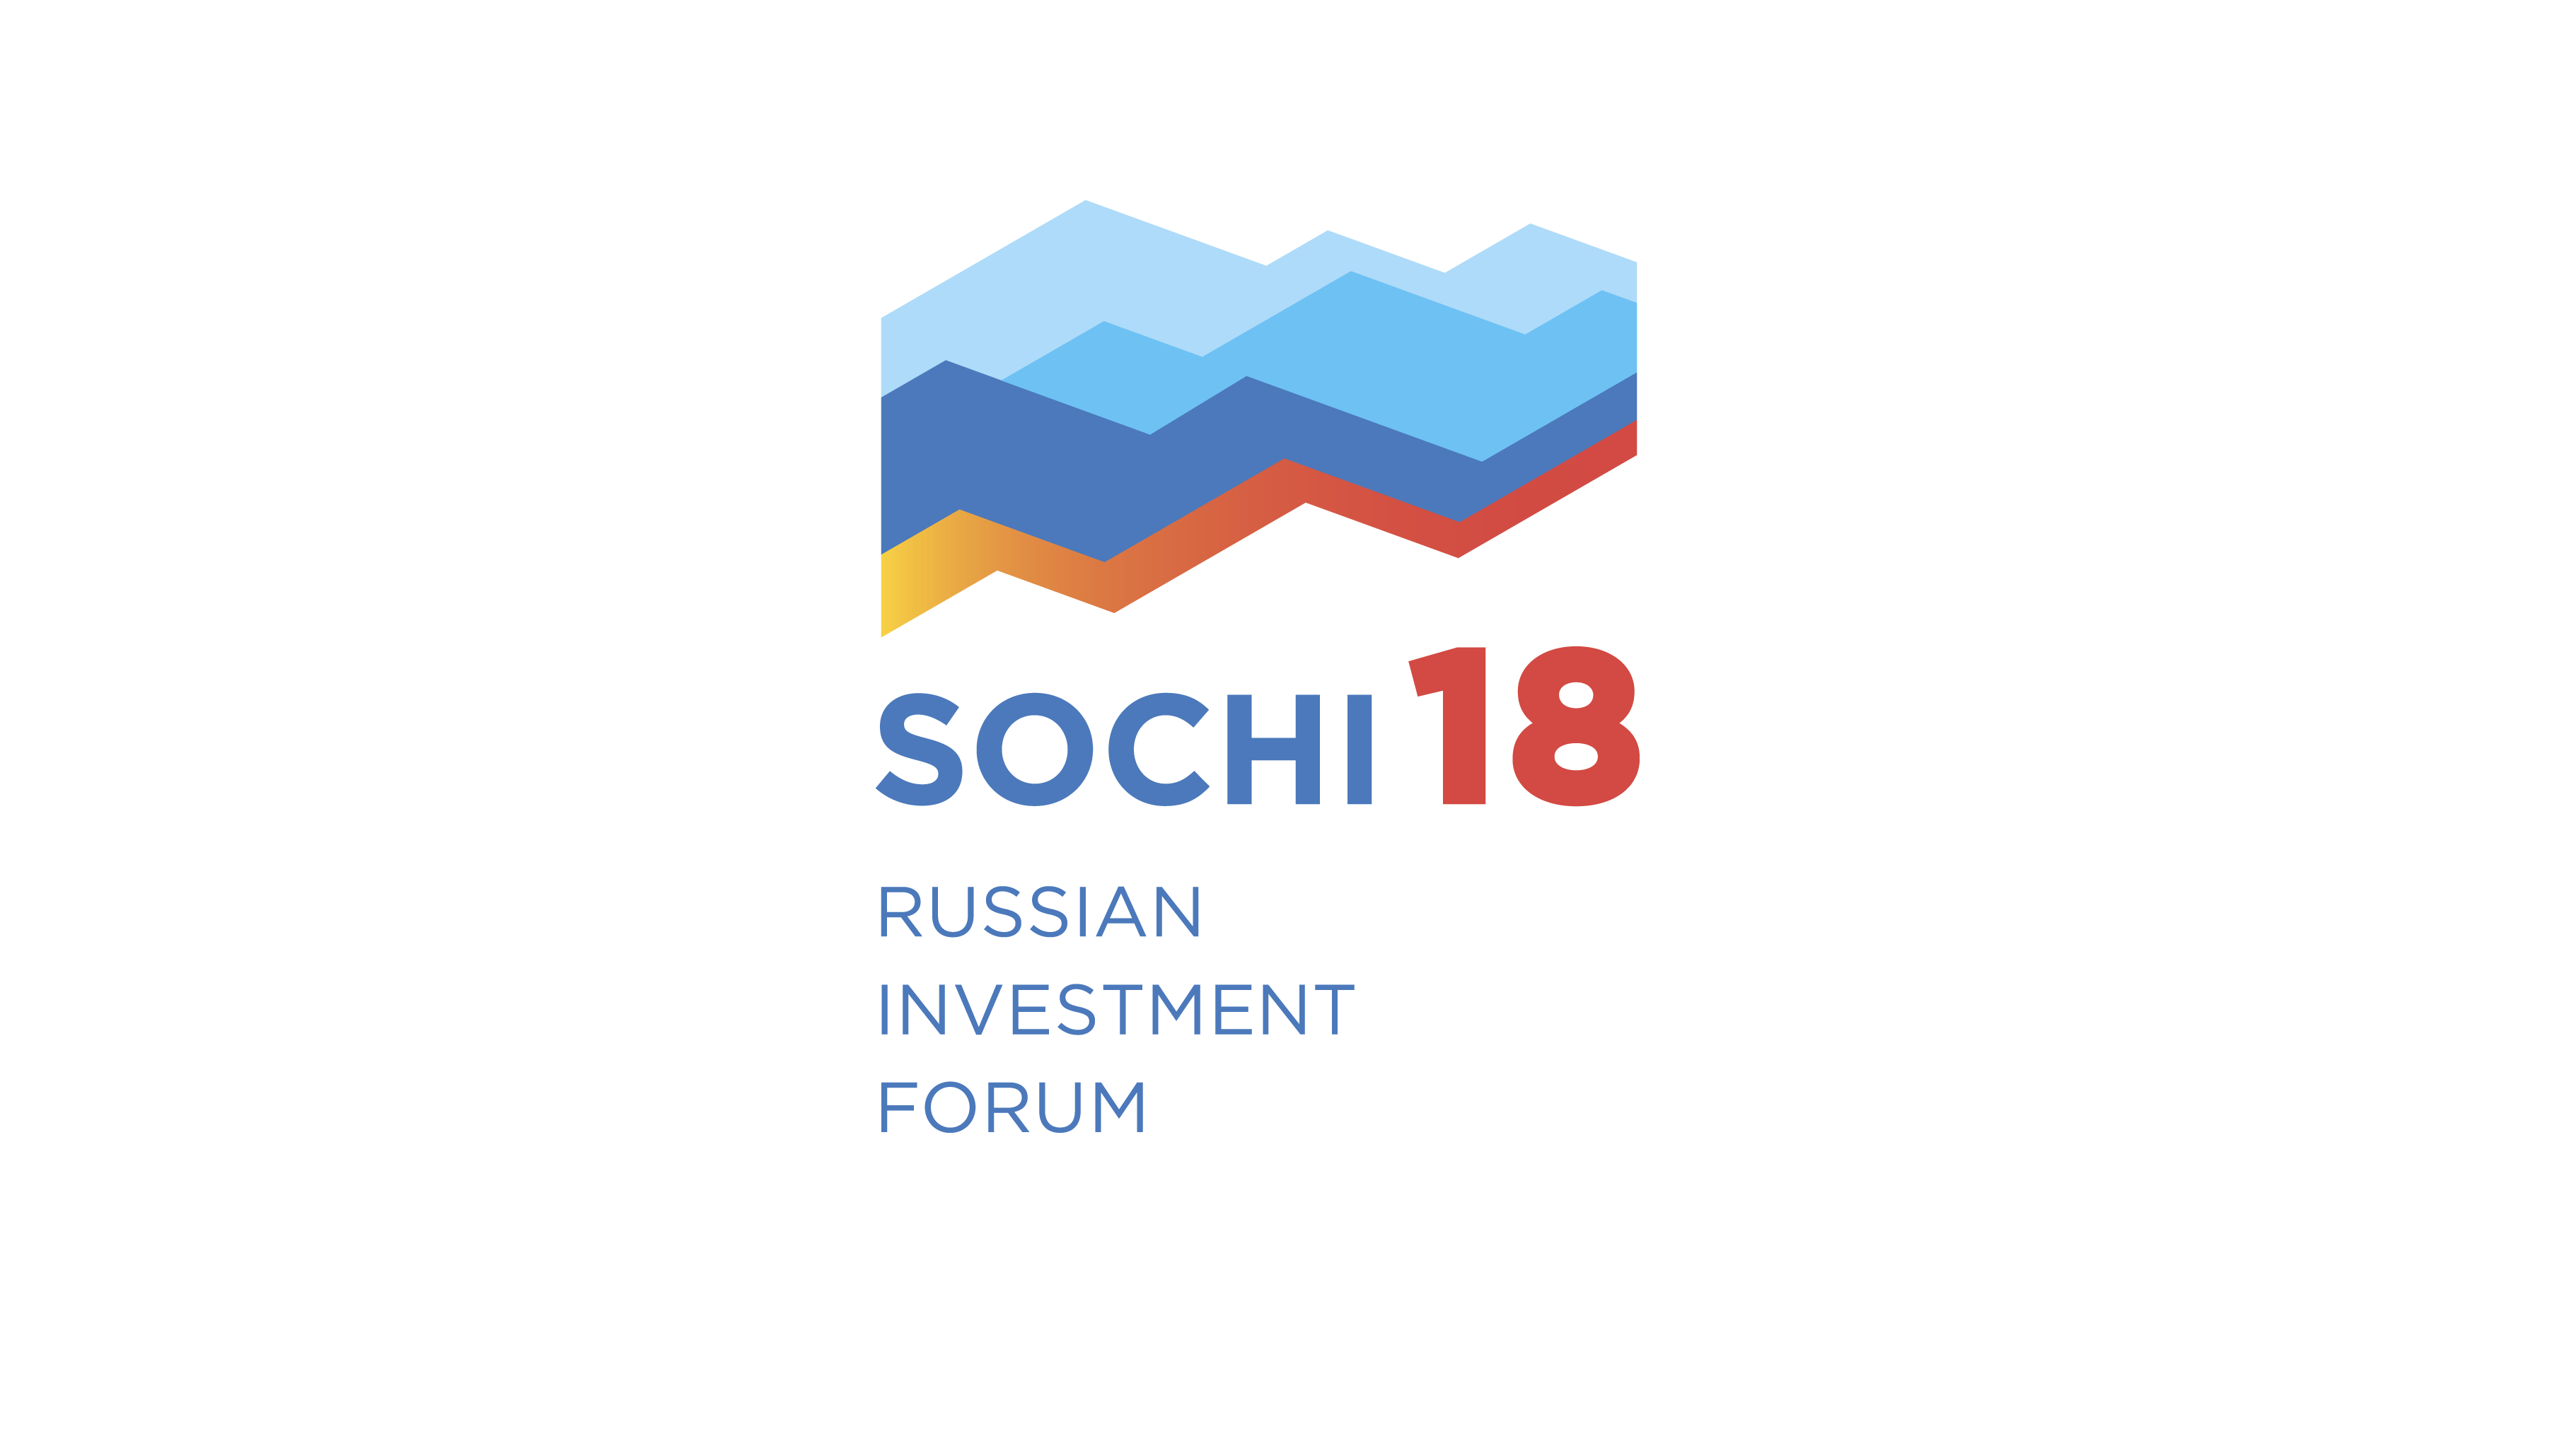 The Russian Investment Forum